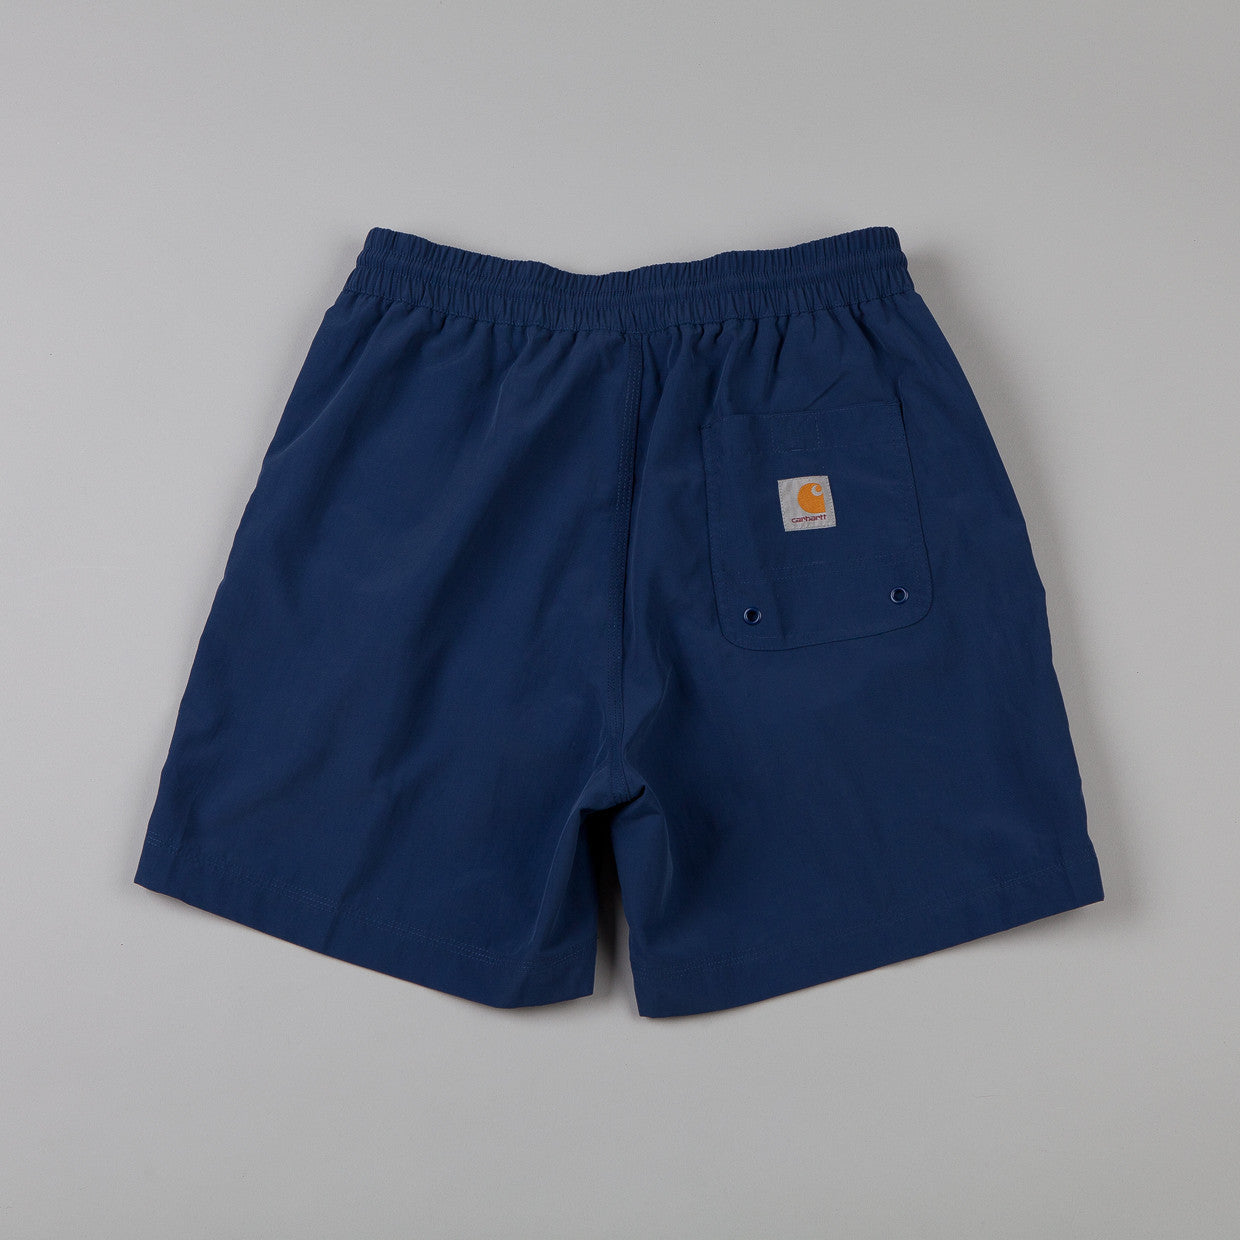 Carhartt Drift Swim Trunk Metro Blue